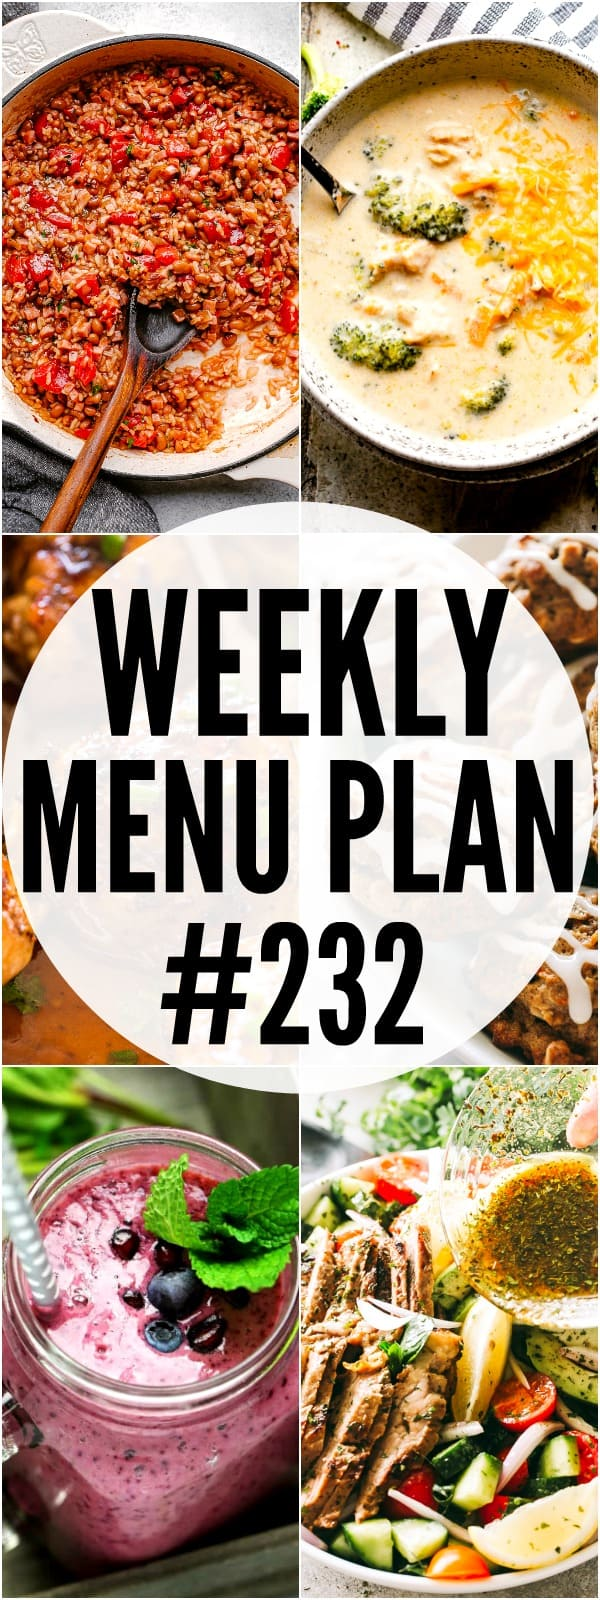 WEEKLY MENU PLAN 232 PIN IMAGE